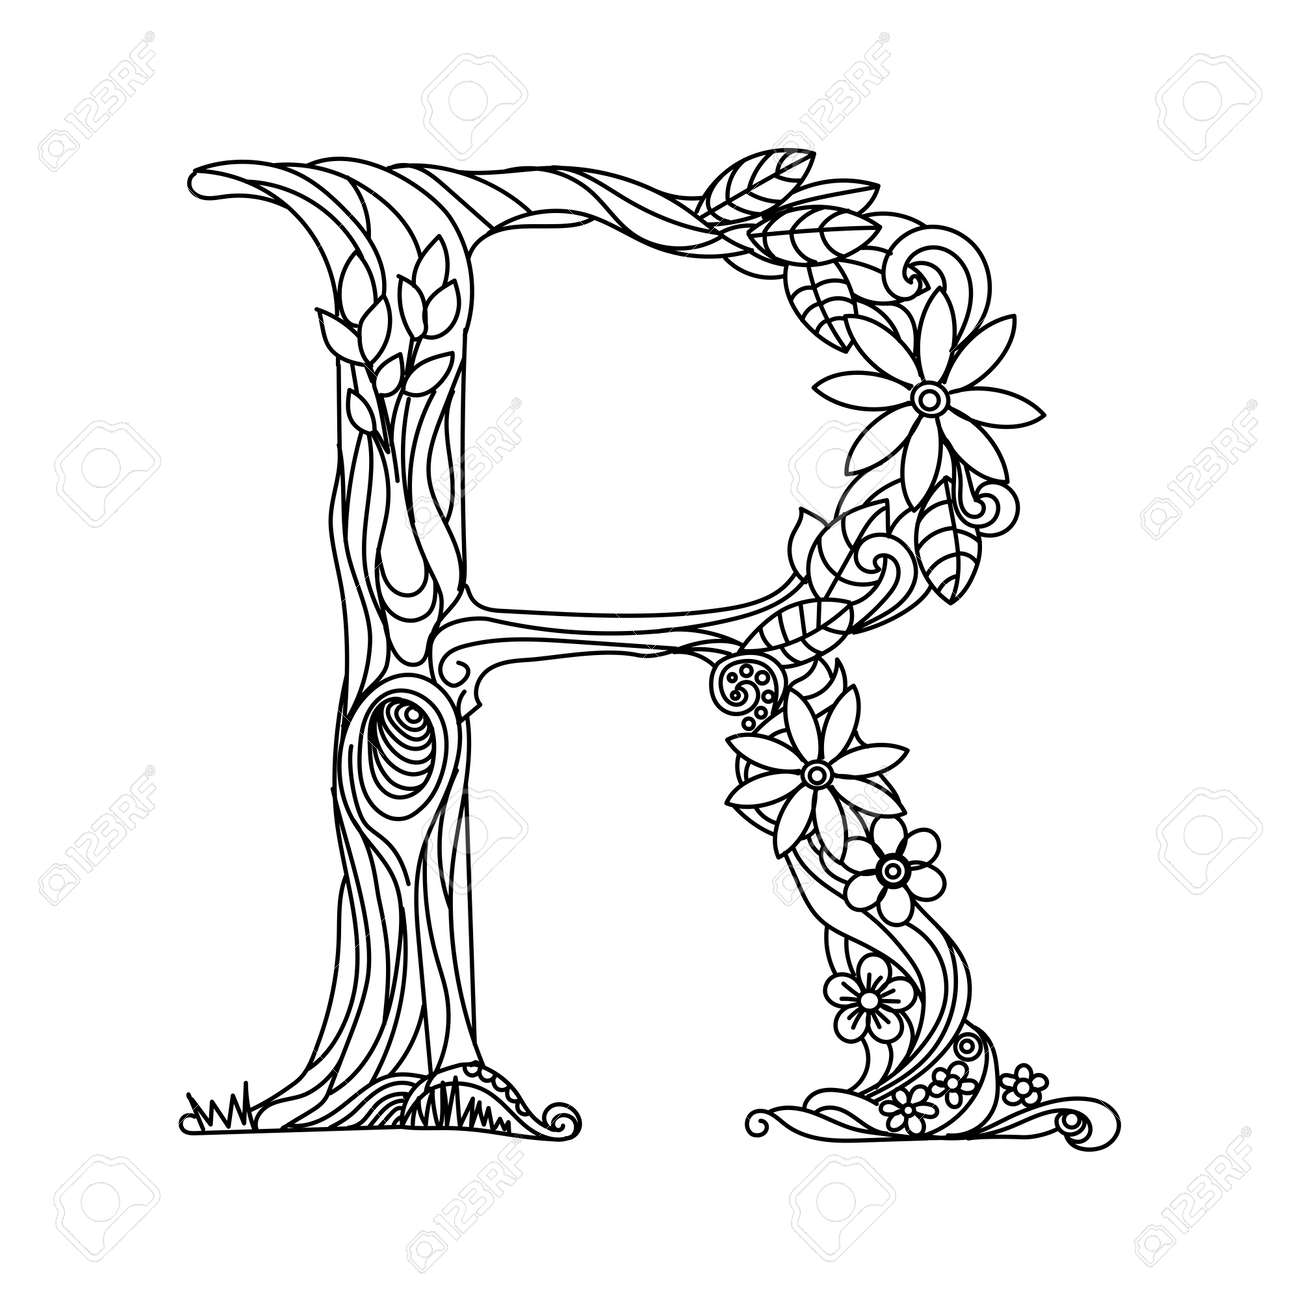 - Floral Alphabet Letter Coloring Book For Adults Illustration